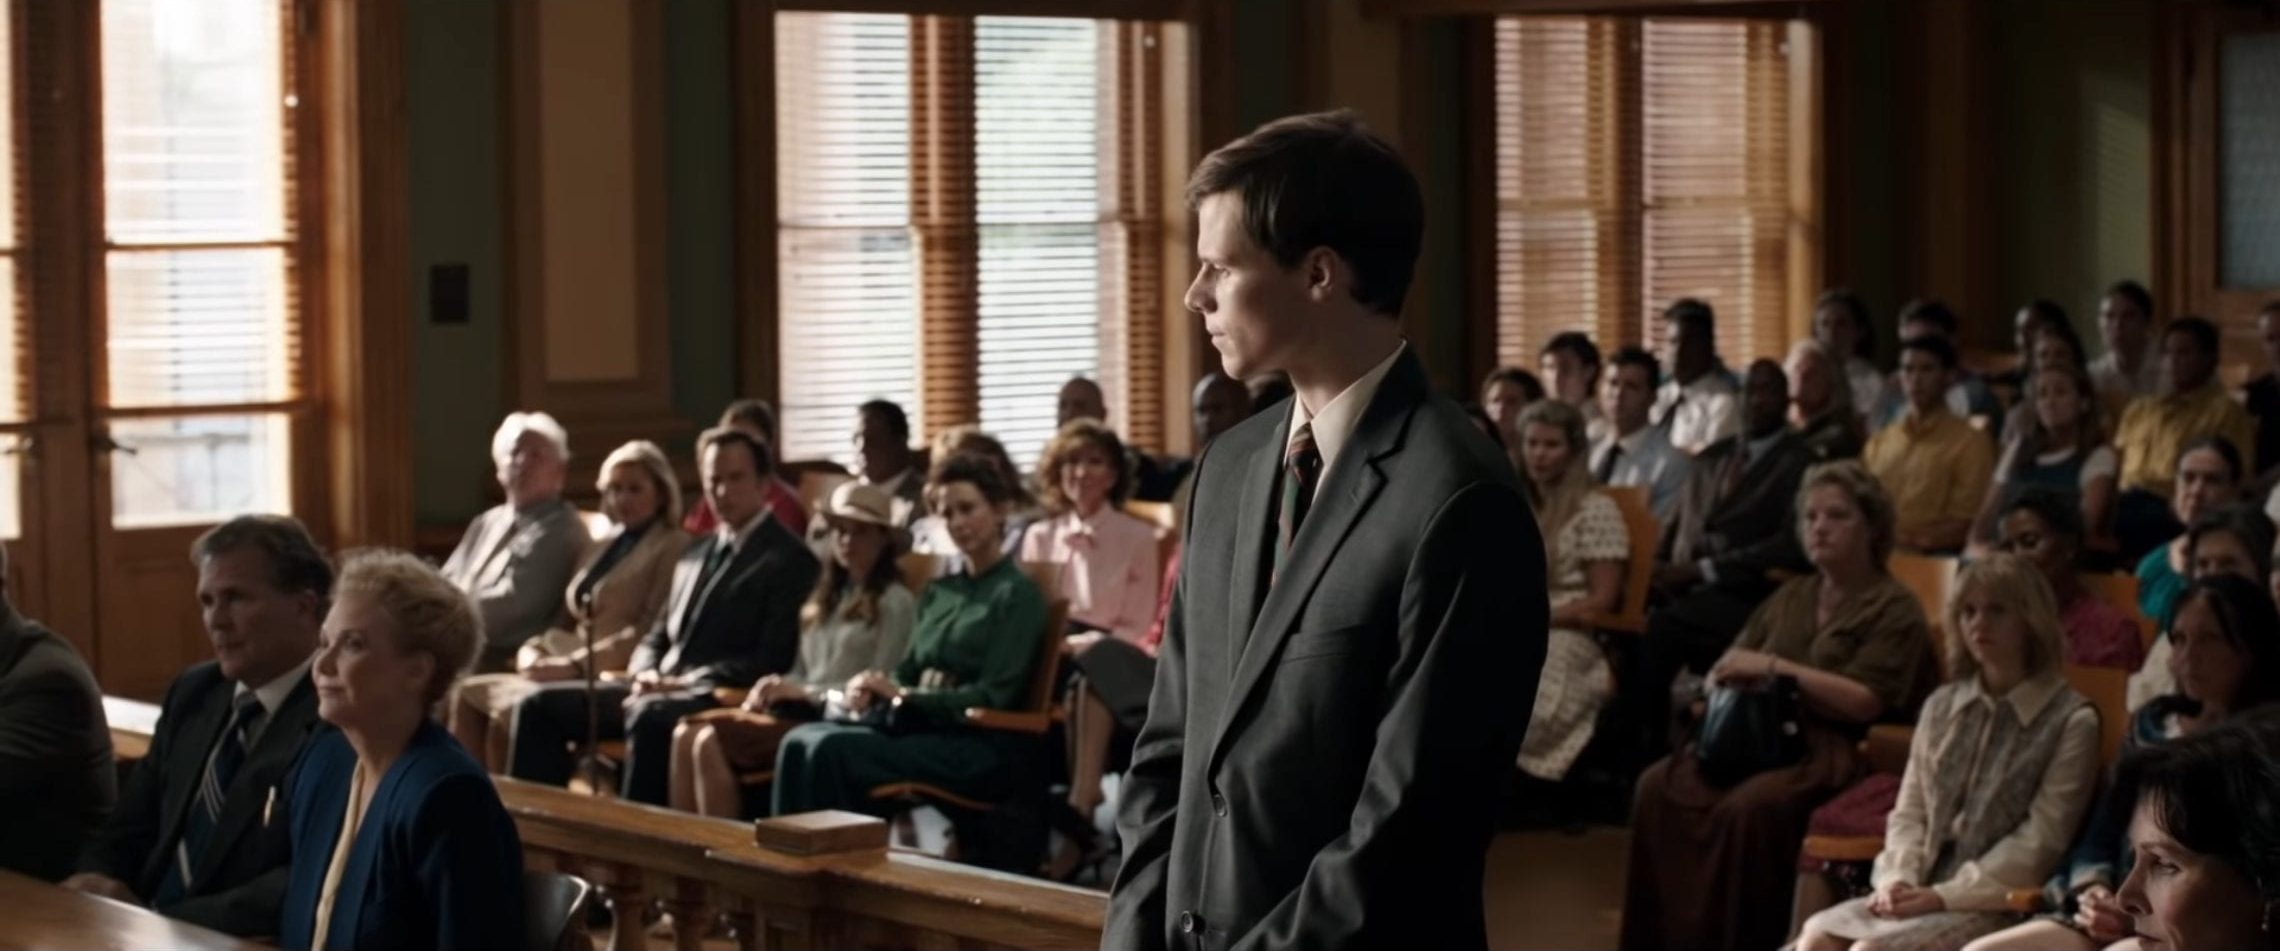 The Real Story Of Arnie's Trial From The Conjuring 3